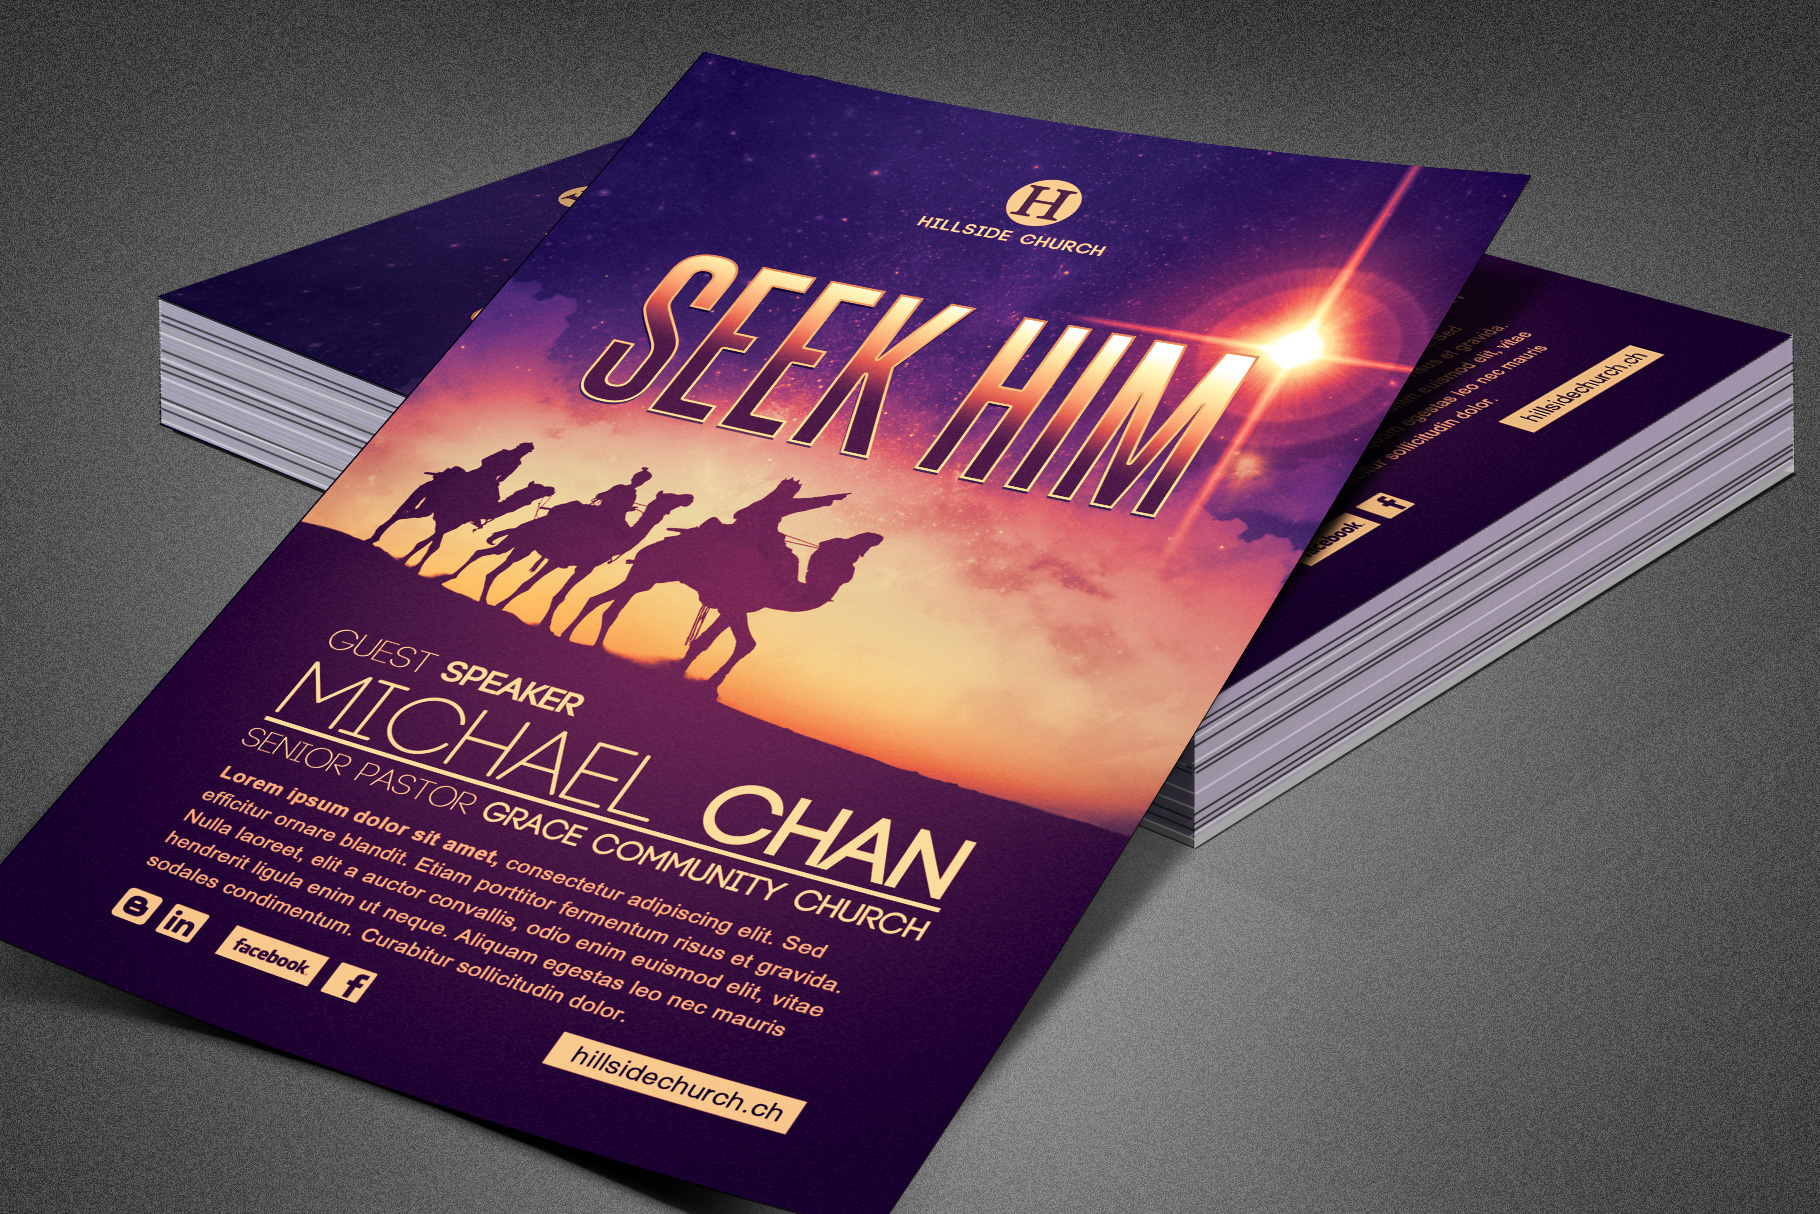 Seek Him Church Flyer Template example image 6